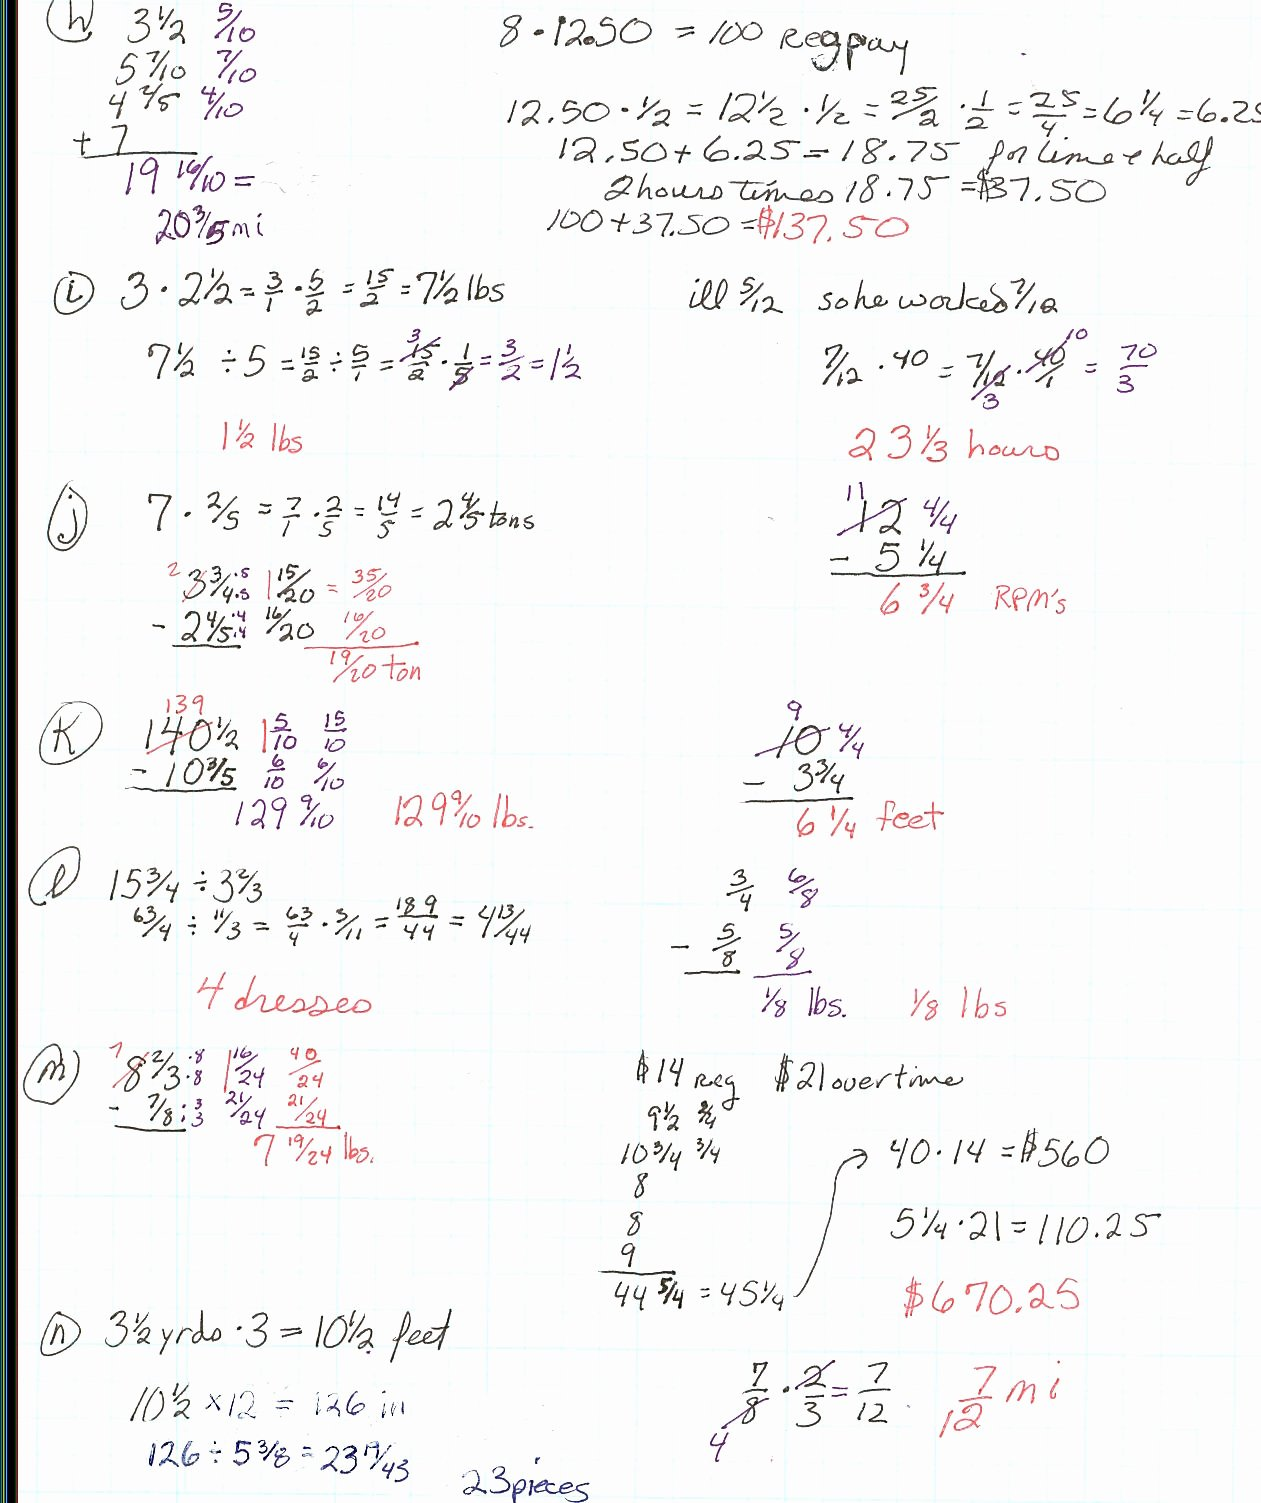 Properties Of Exponents Worksheet Answers Luxury Properties Exponents Worksheet Algebra 1 Answers the